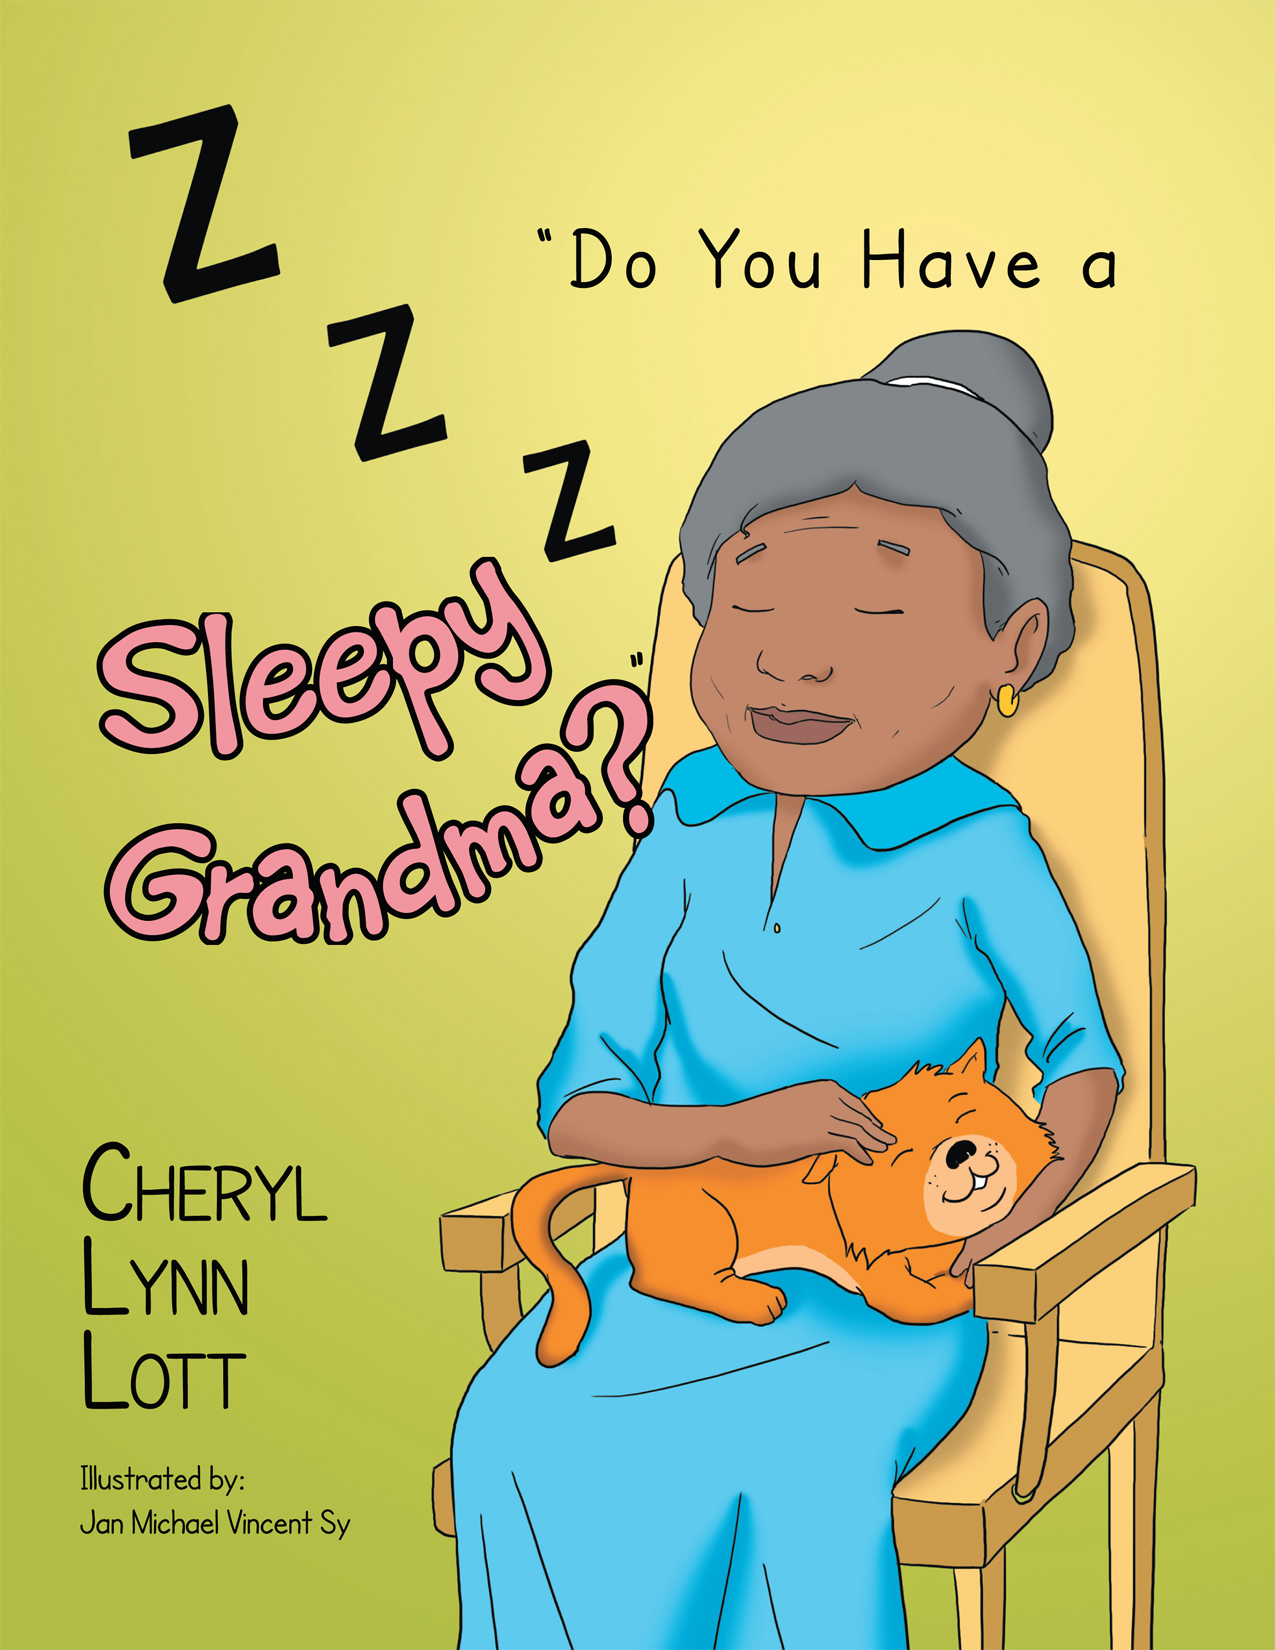 ''Do You Have a Sleepy Grandma?''